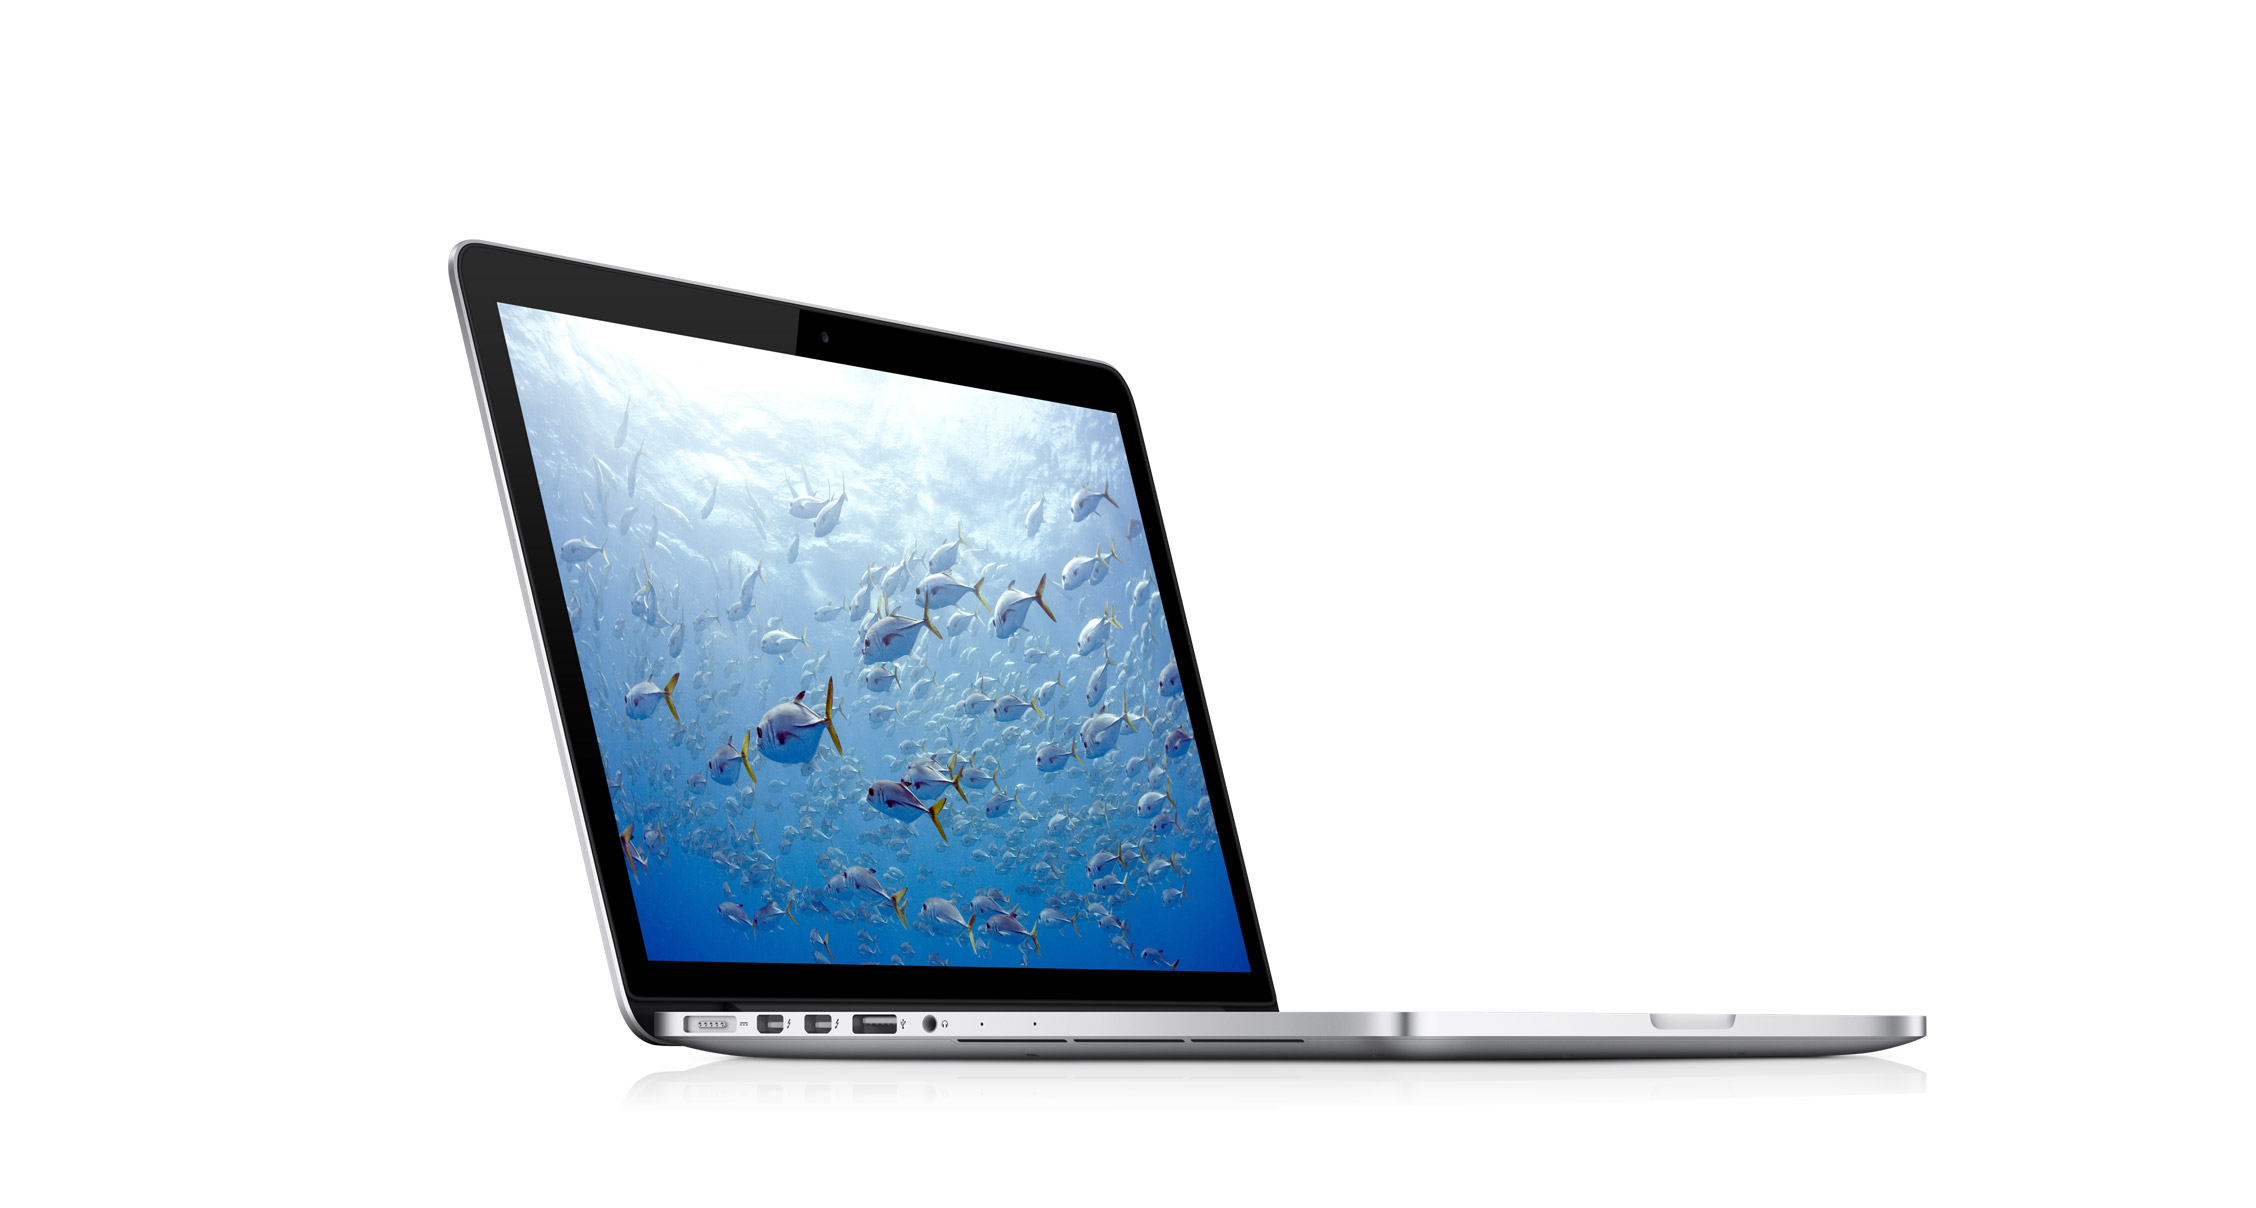 MacBook Air 11-inch: 256GB